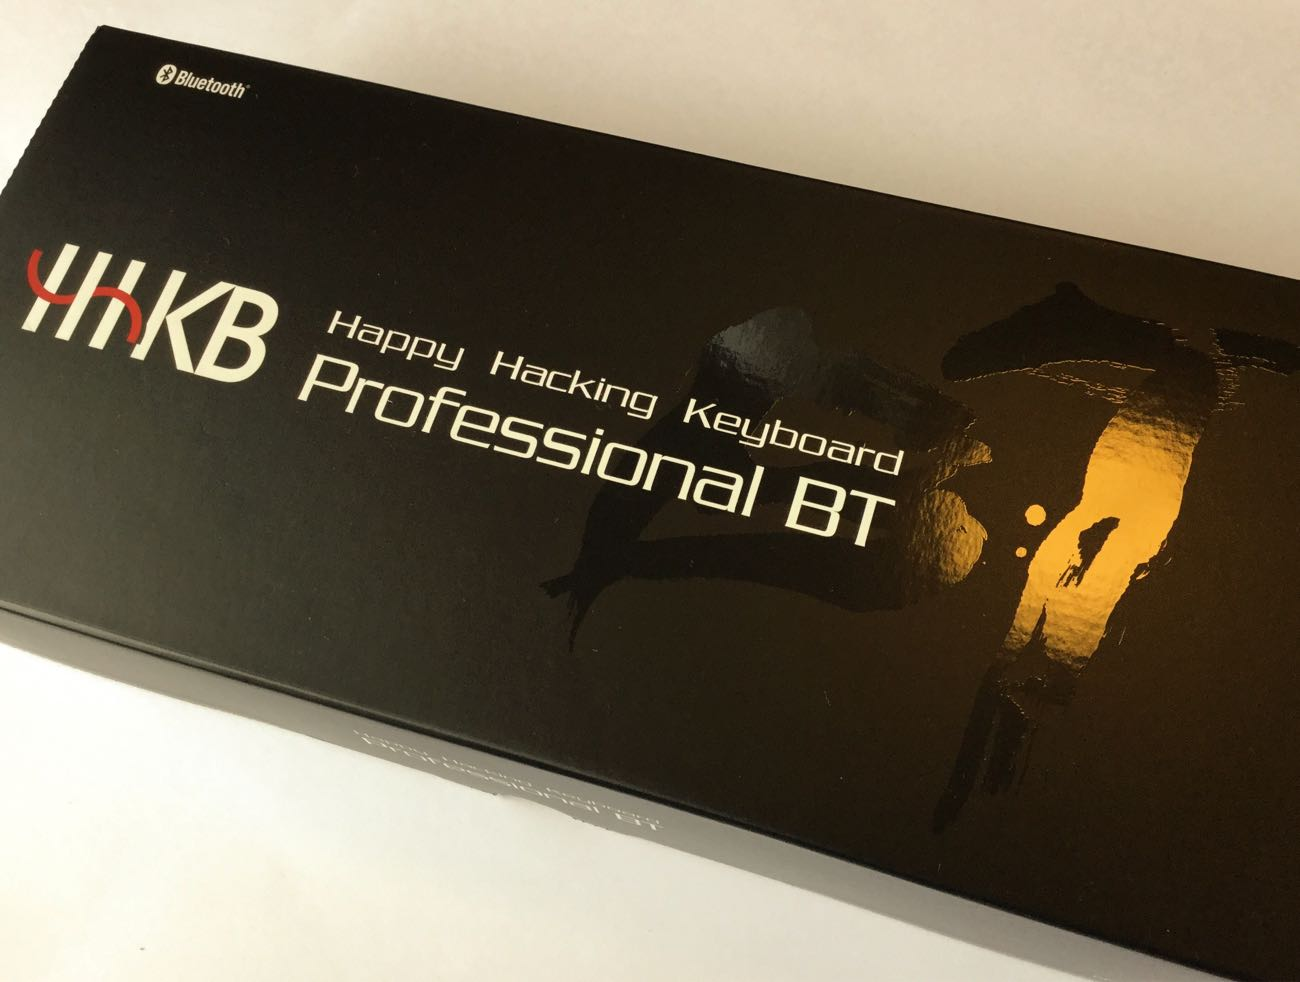 Happy Hacking Keyboard Professional BTの箱